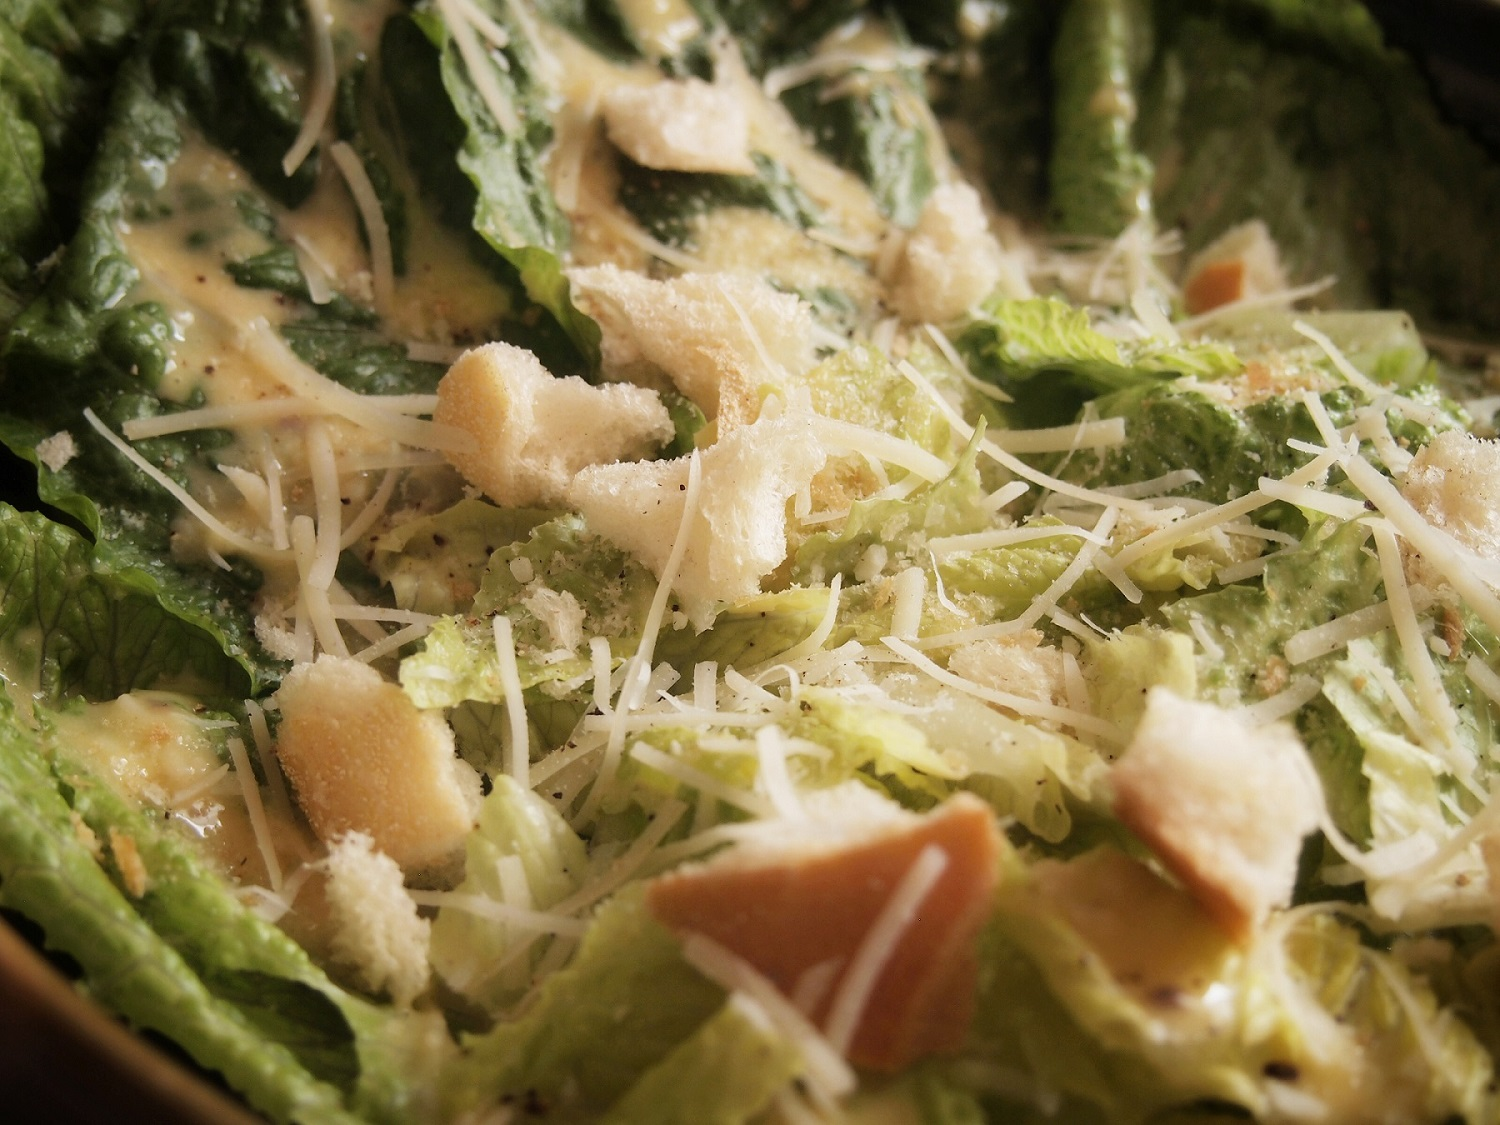 Close up of the Caesar salad recipe with croutons, Parmesan cheese, and romaine.